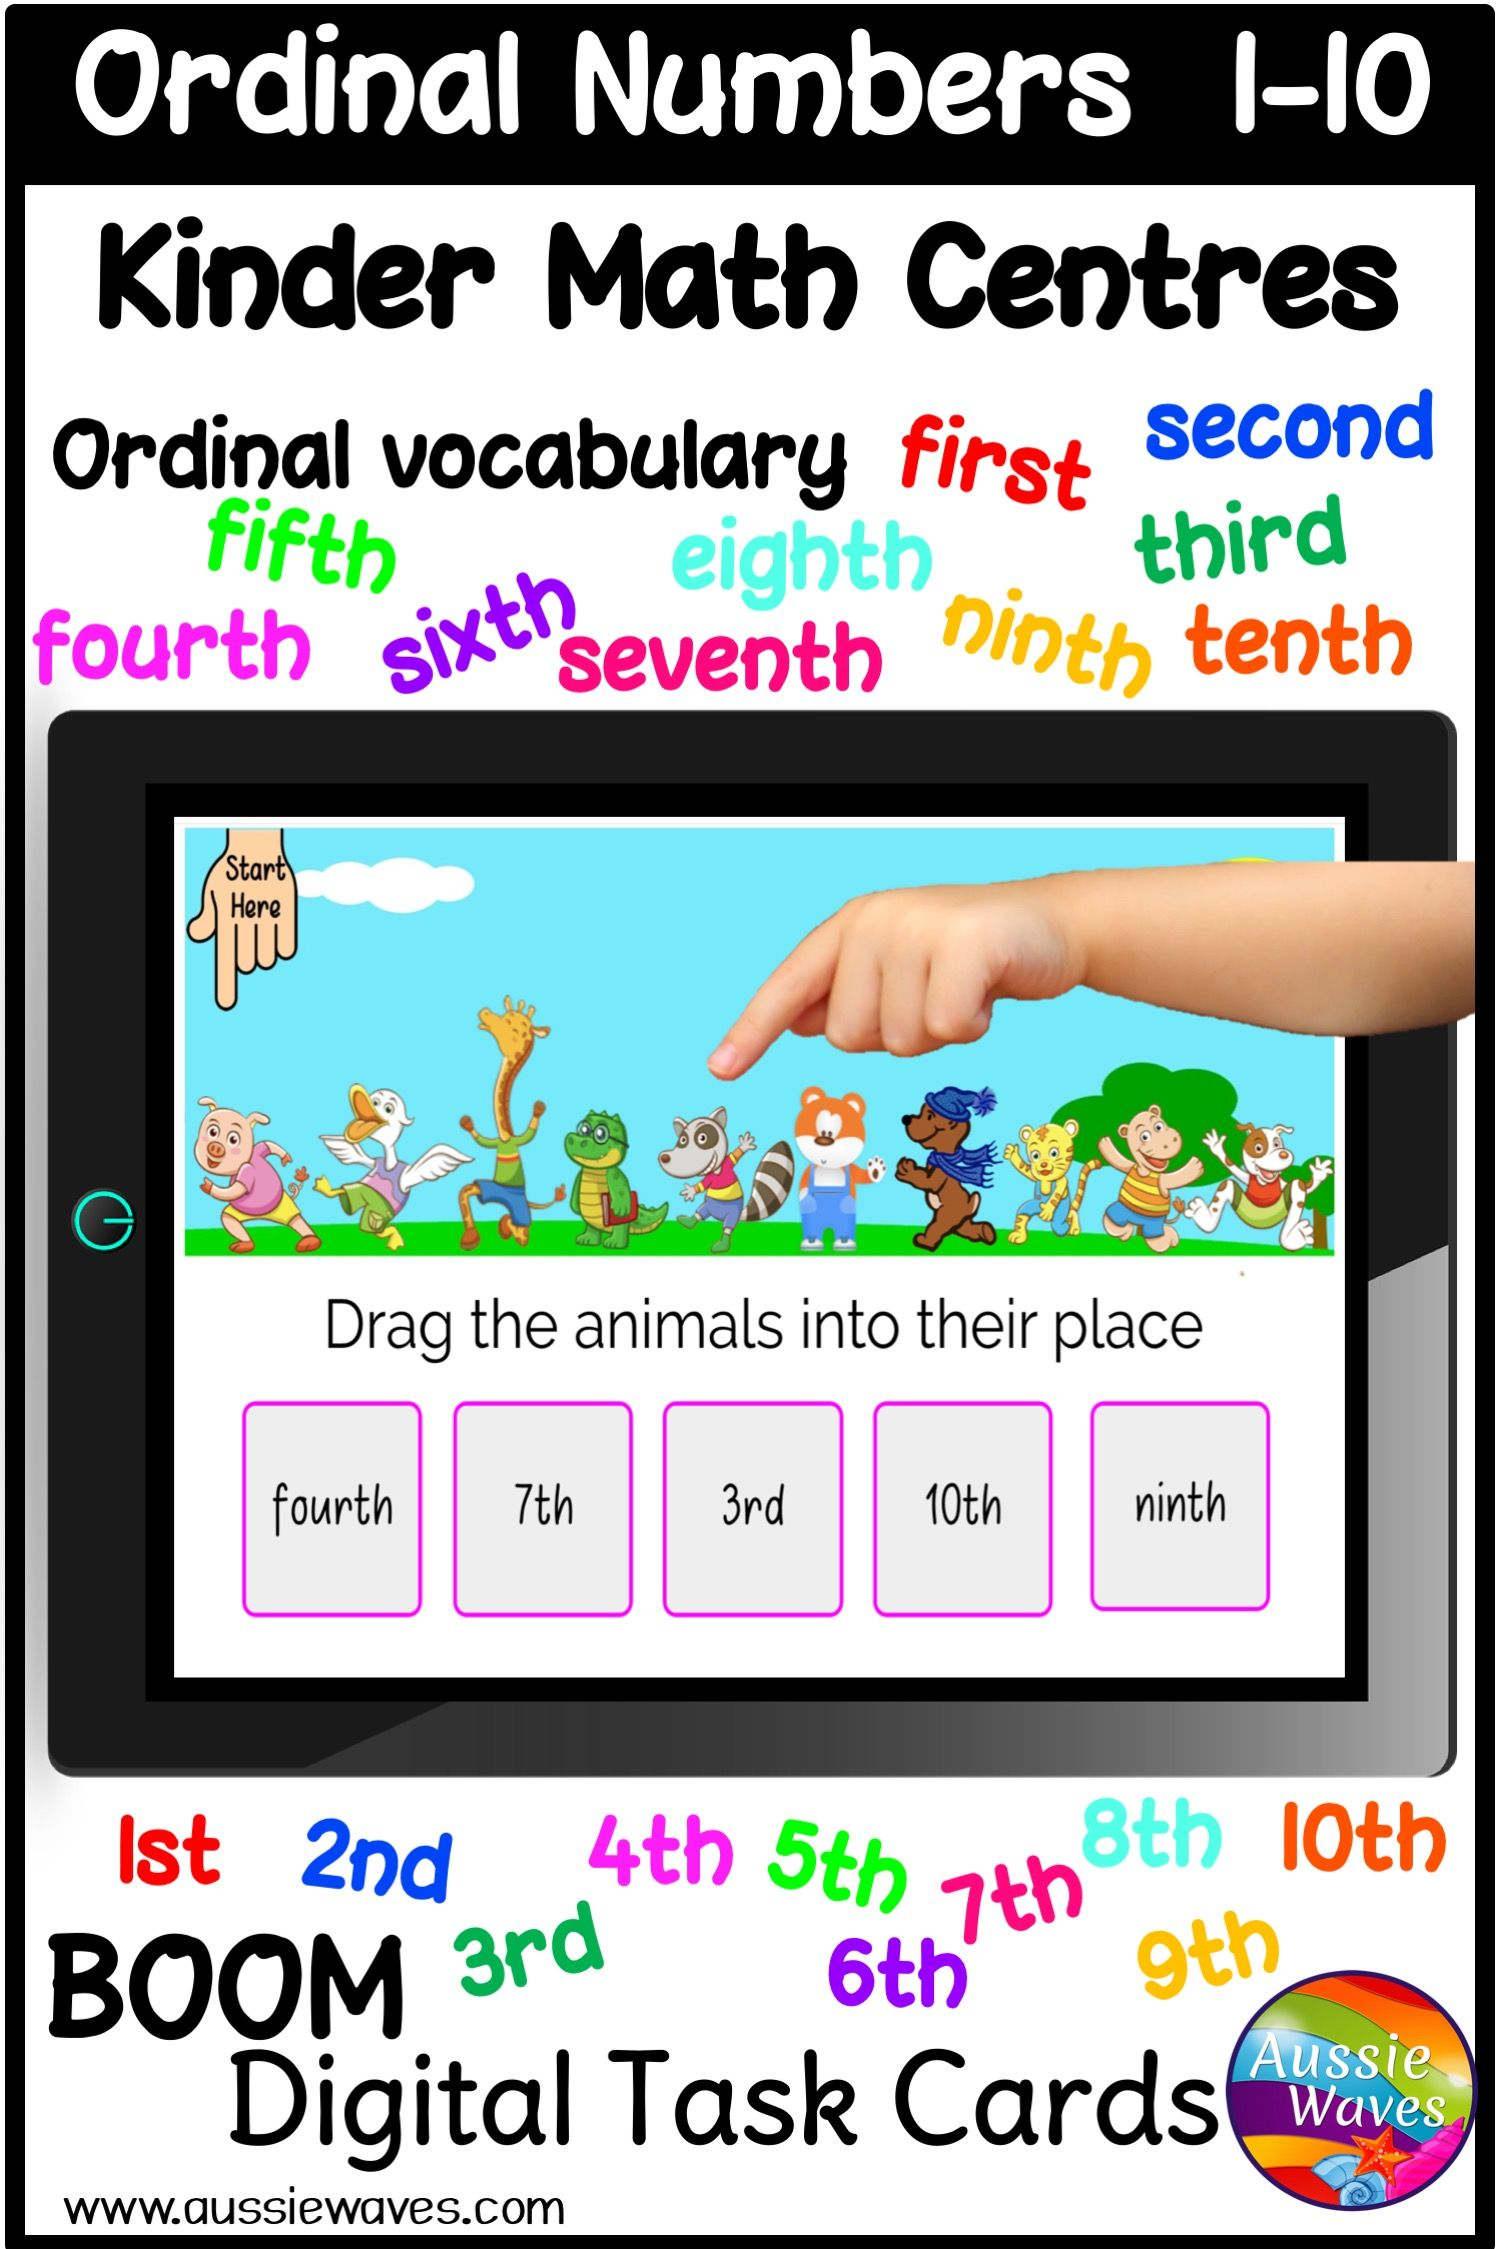 Ordinal Numbers Kinder Math Centre Boom Activities In